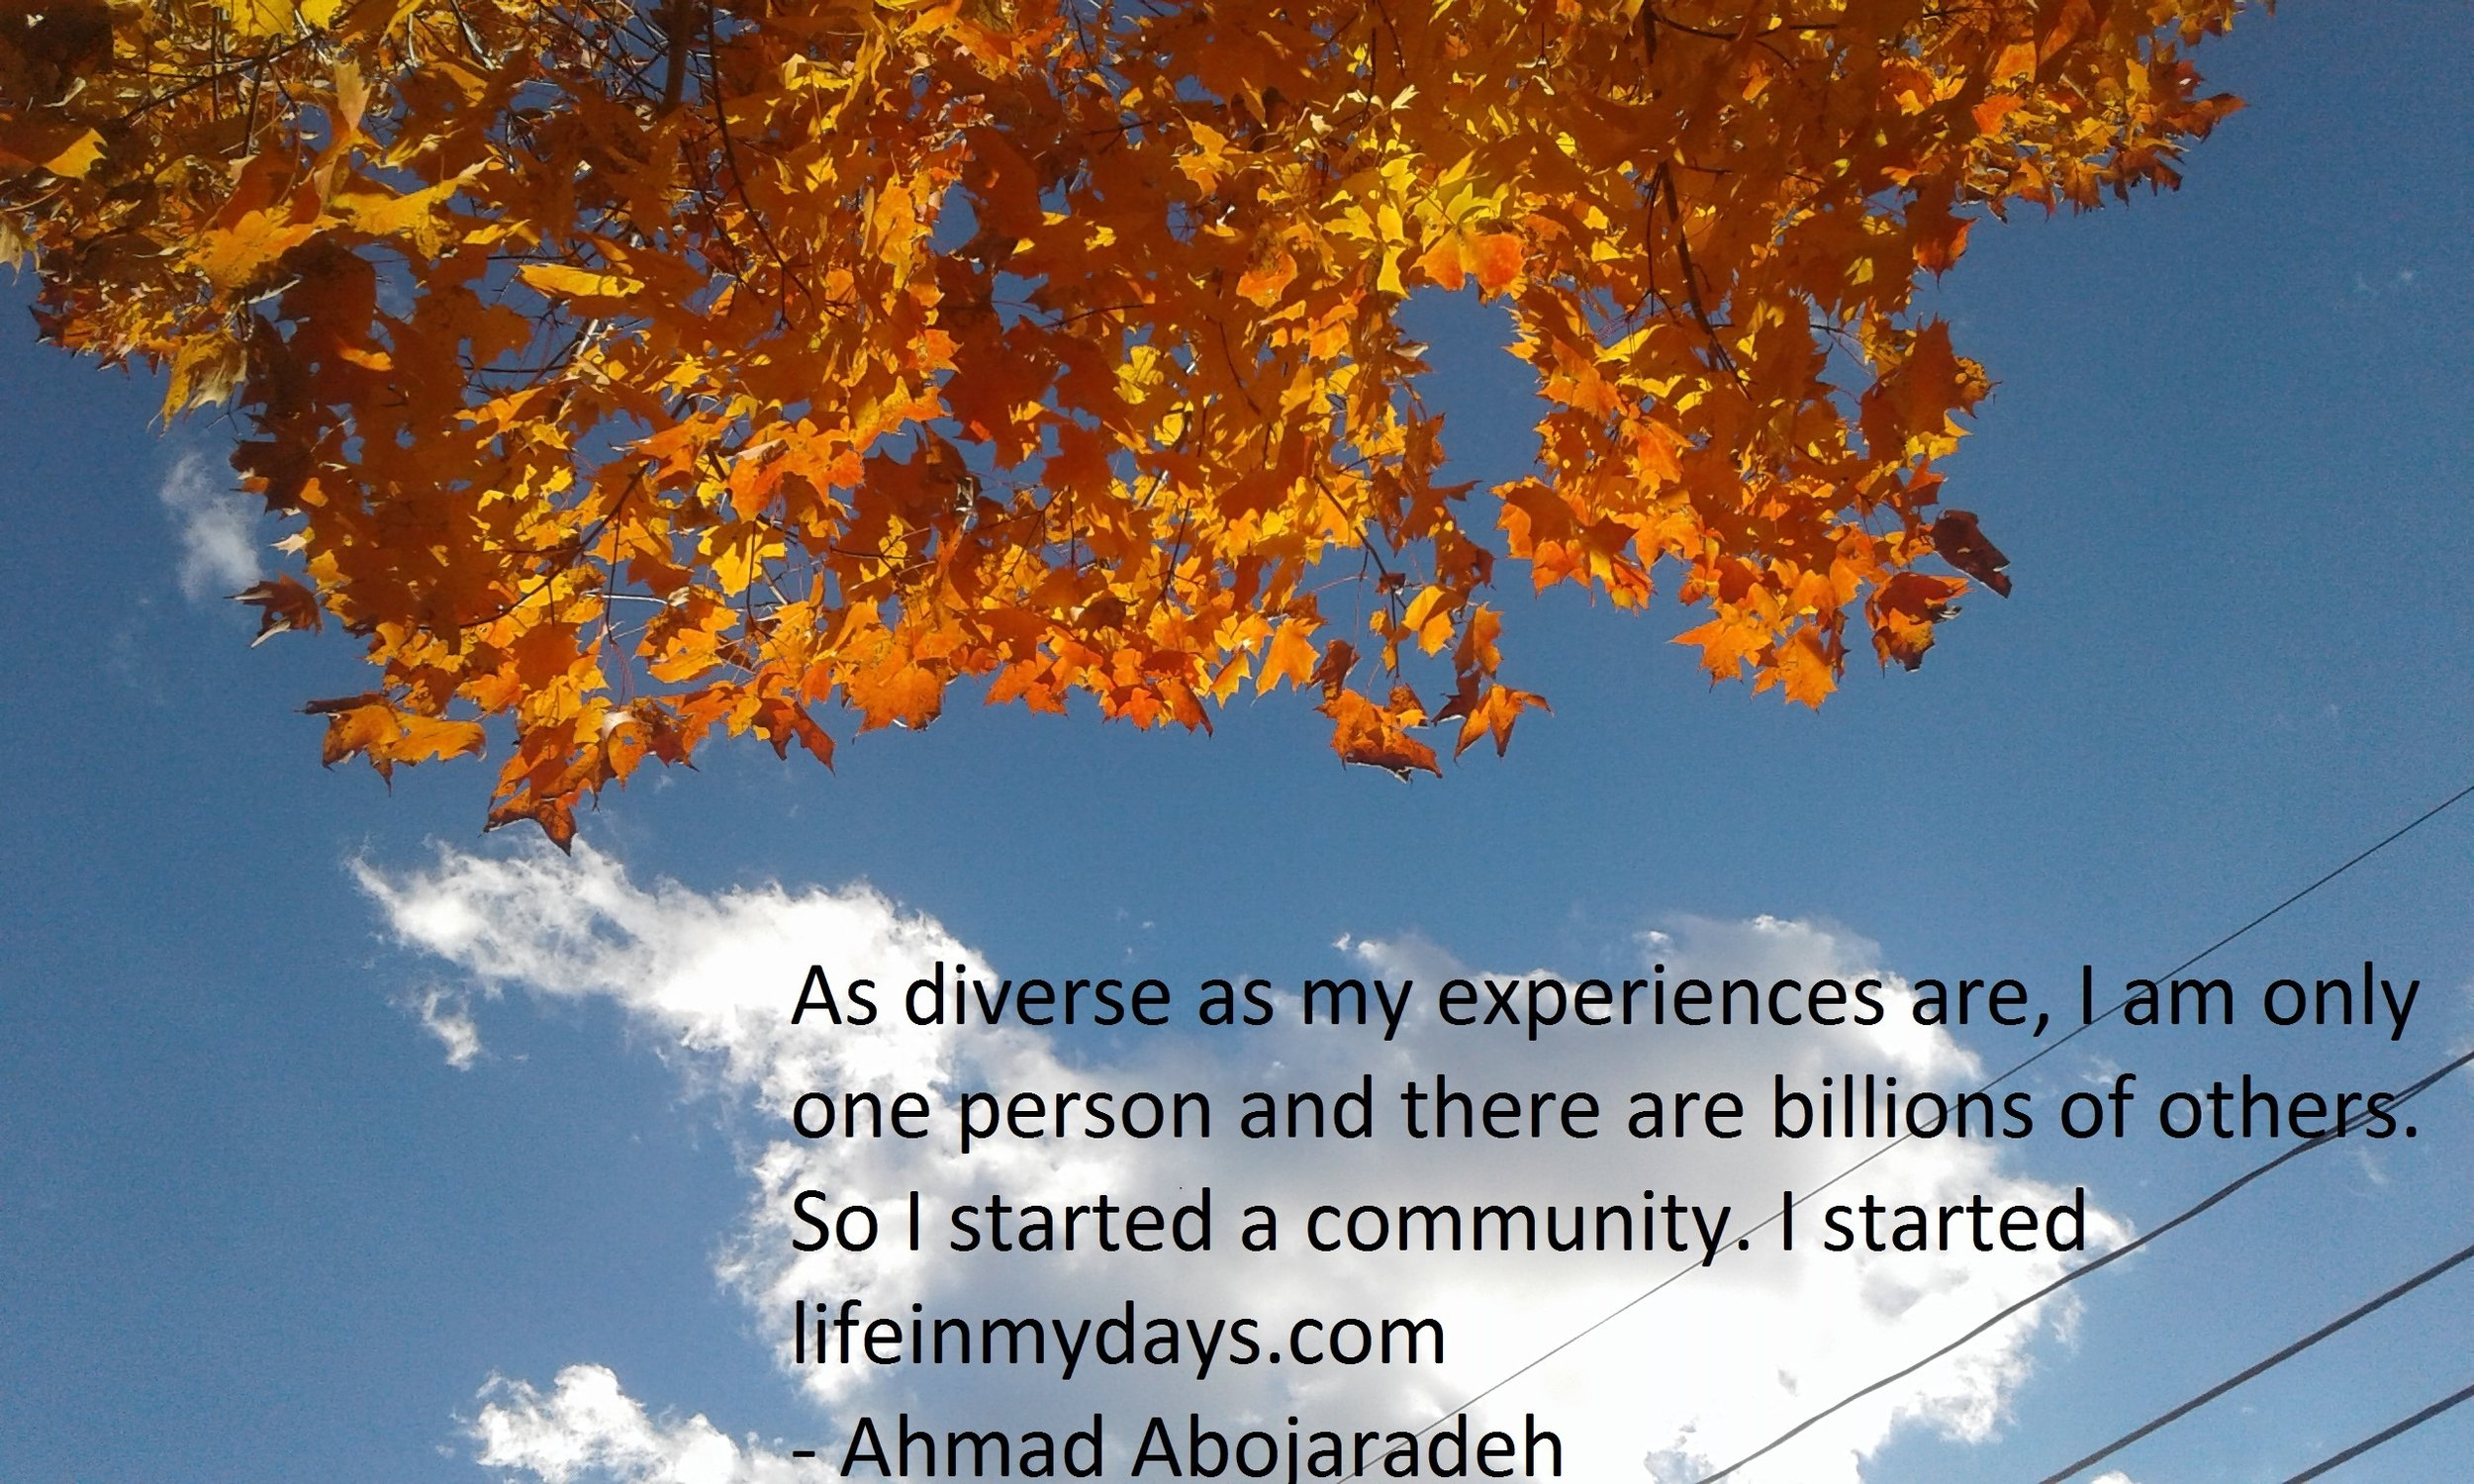 Photo Description: Brilliant orange leaves on a tree across the top of the photo and blue sky with shining cloud across the bottom